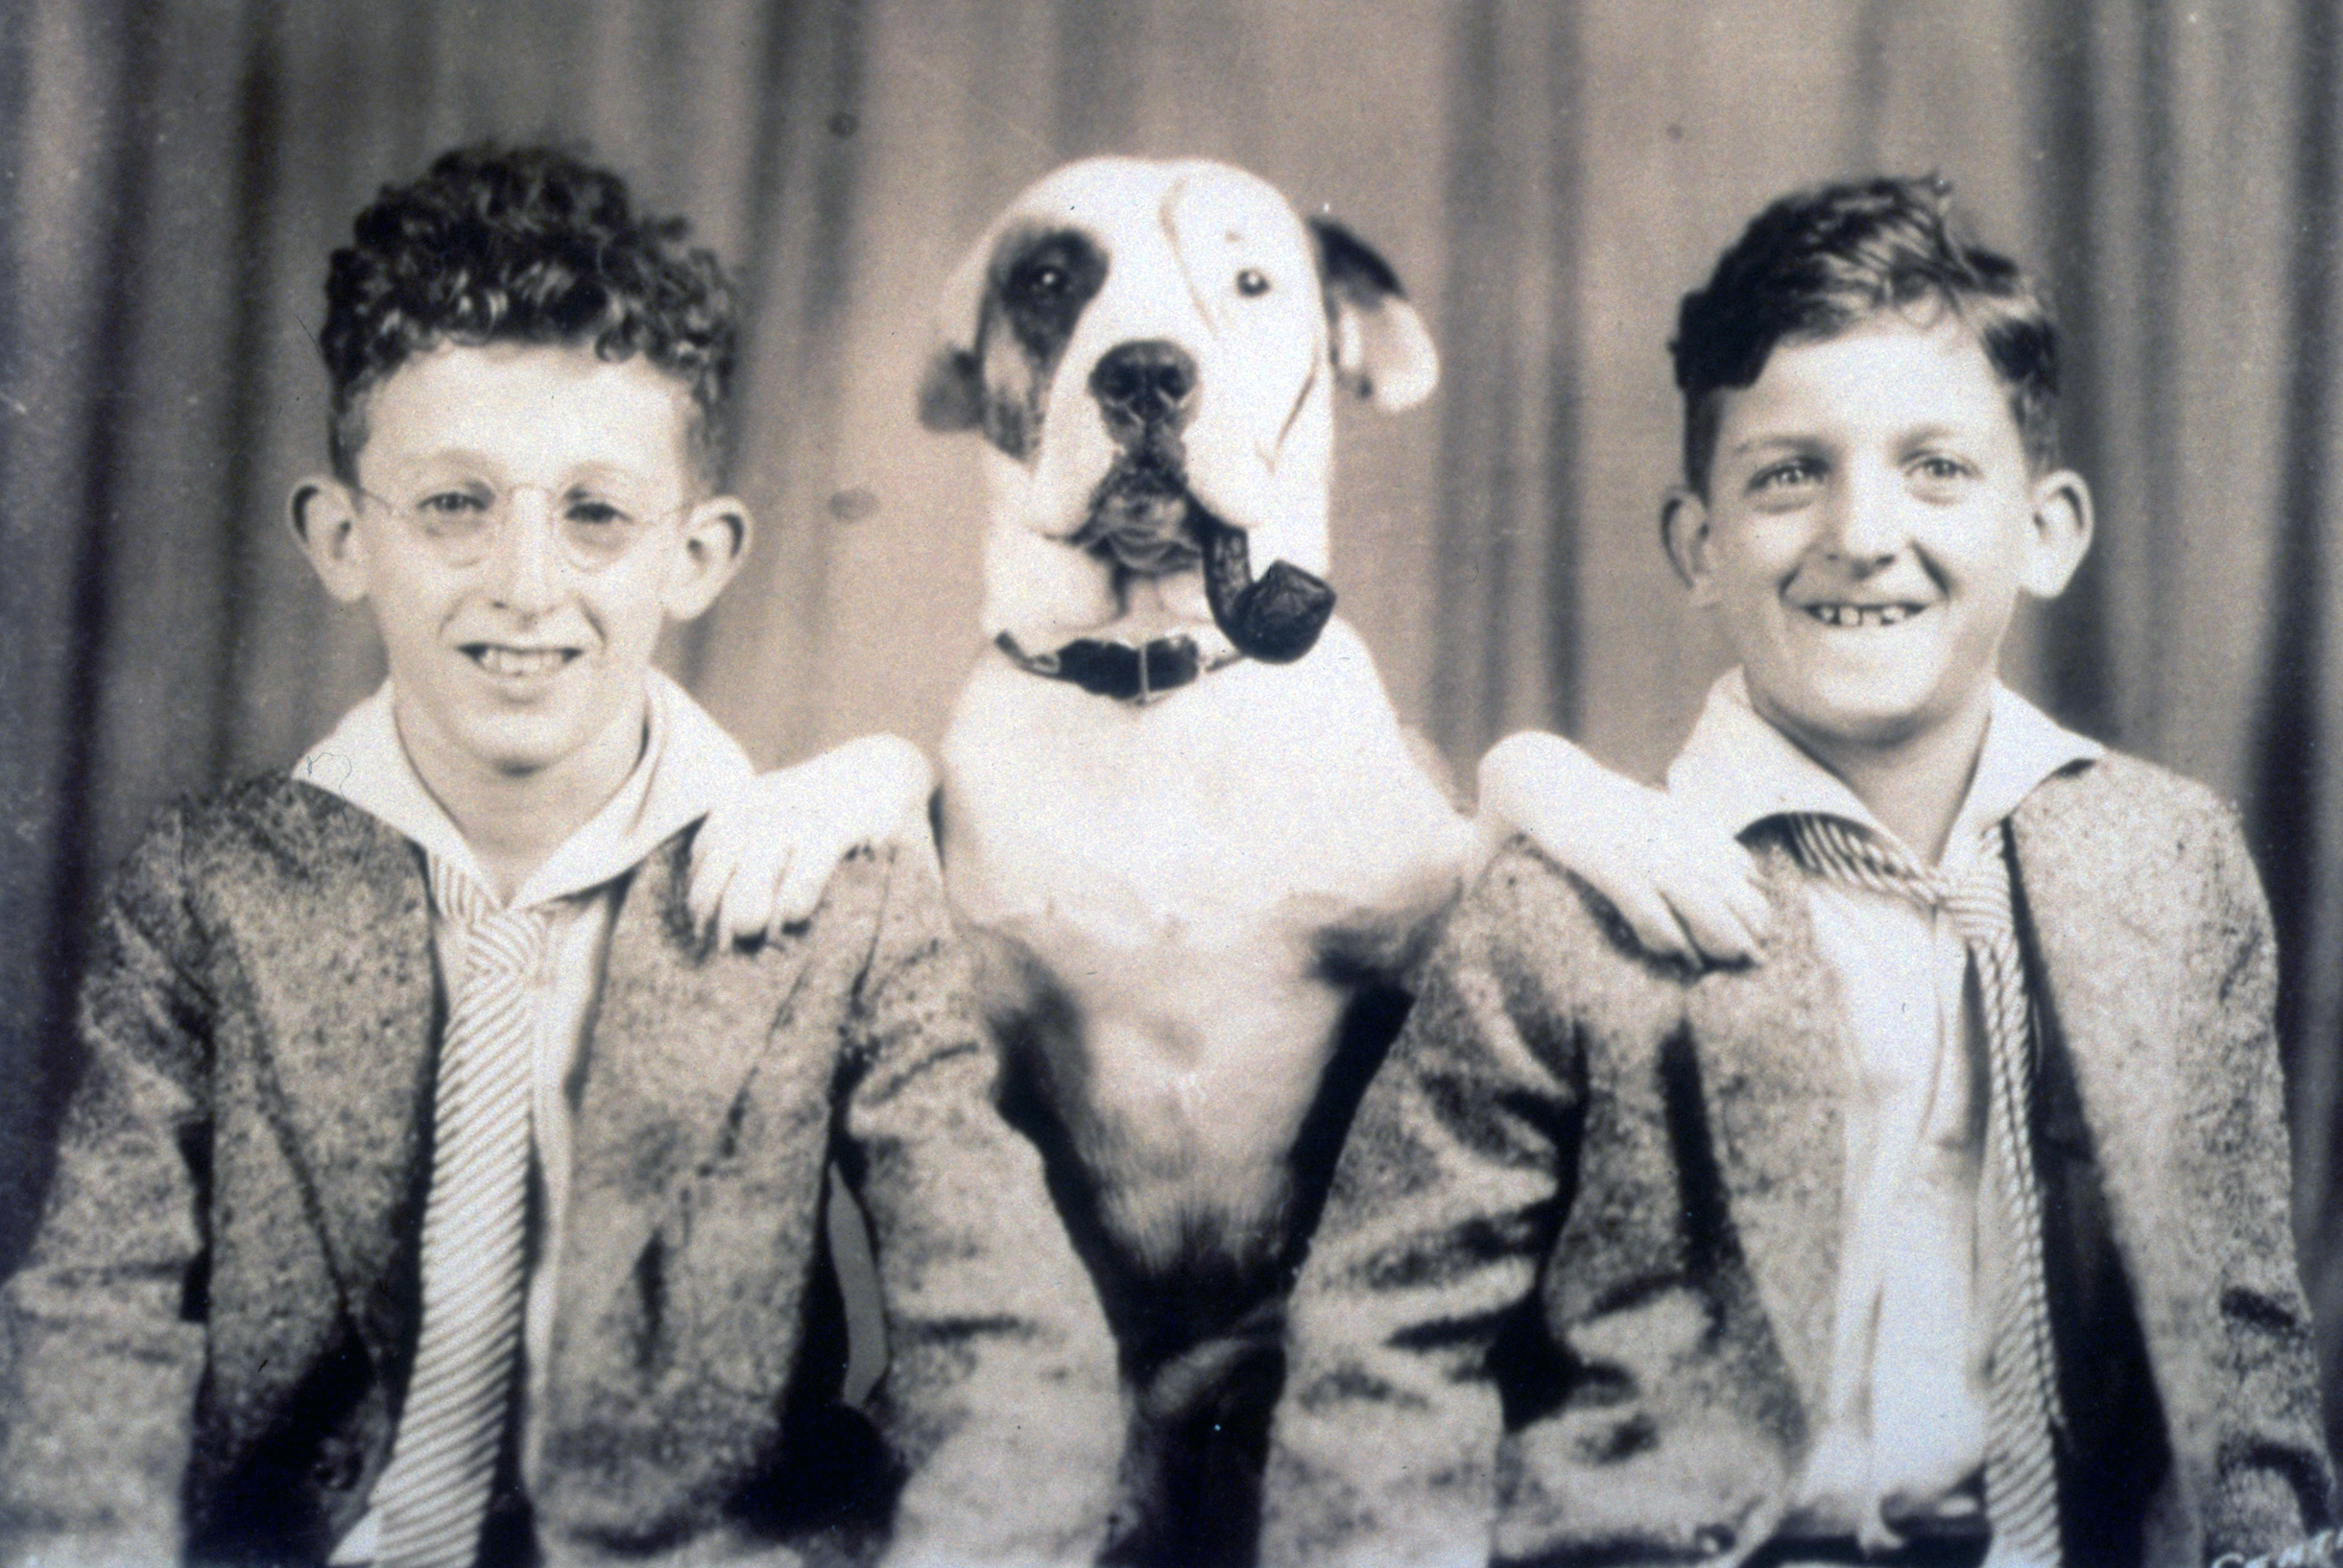 Photo of Jerome and Harry as children with dog